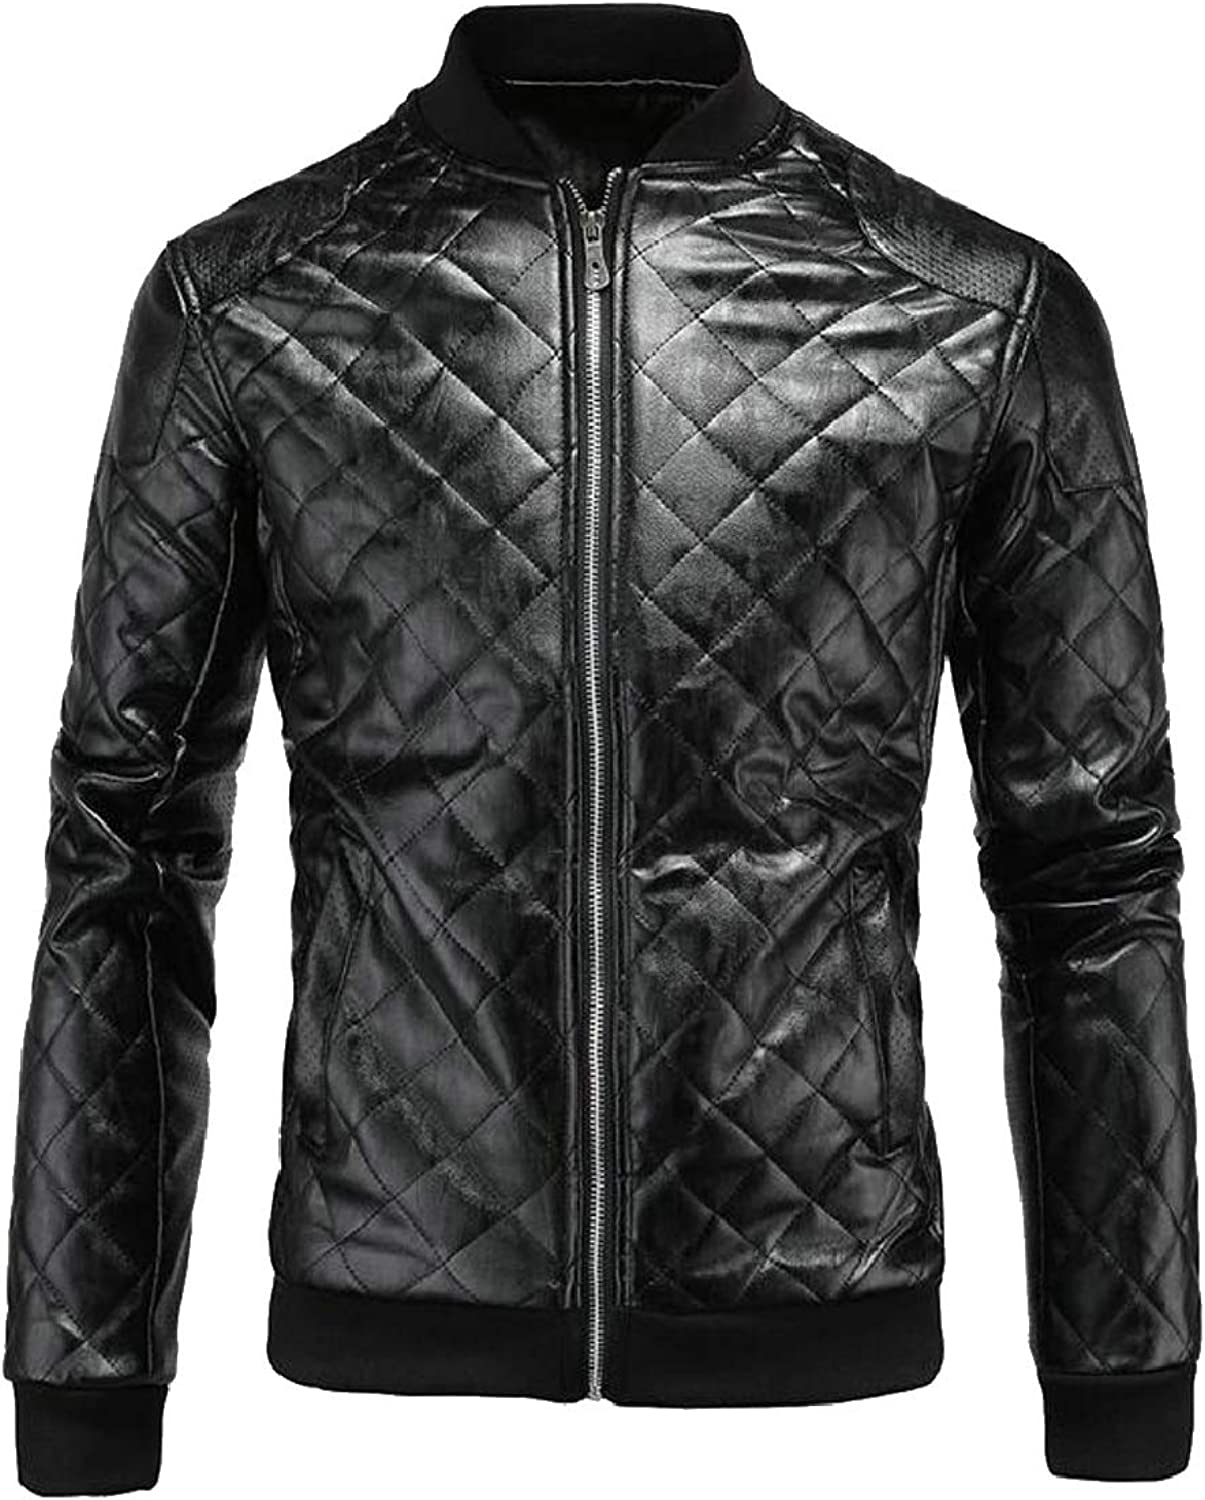 1bc90bfae QD-CACA Men's Men's Men's PU Faux Leather Jacket Bomber Fashion Slim Fit  Coat e91d7c